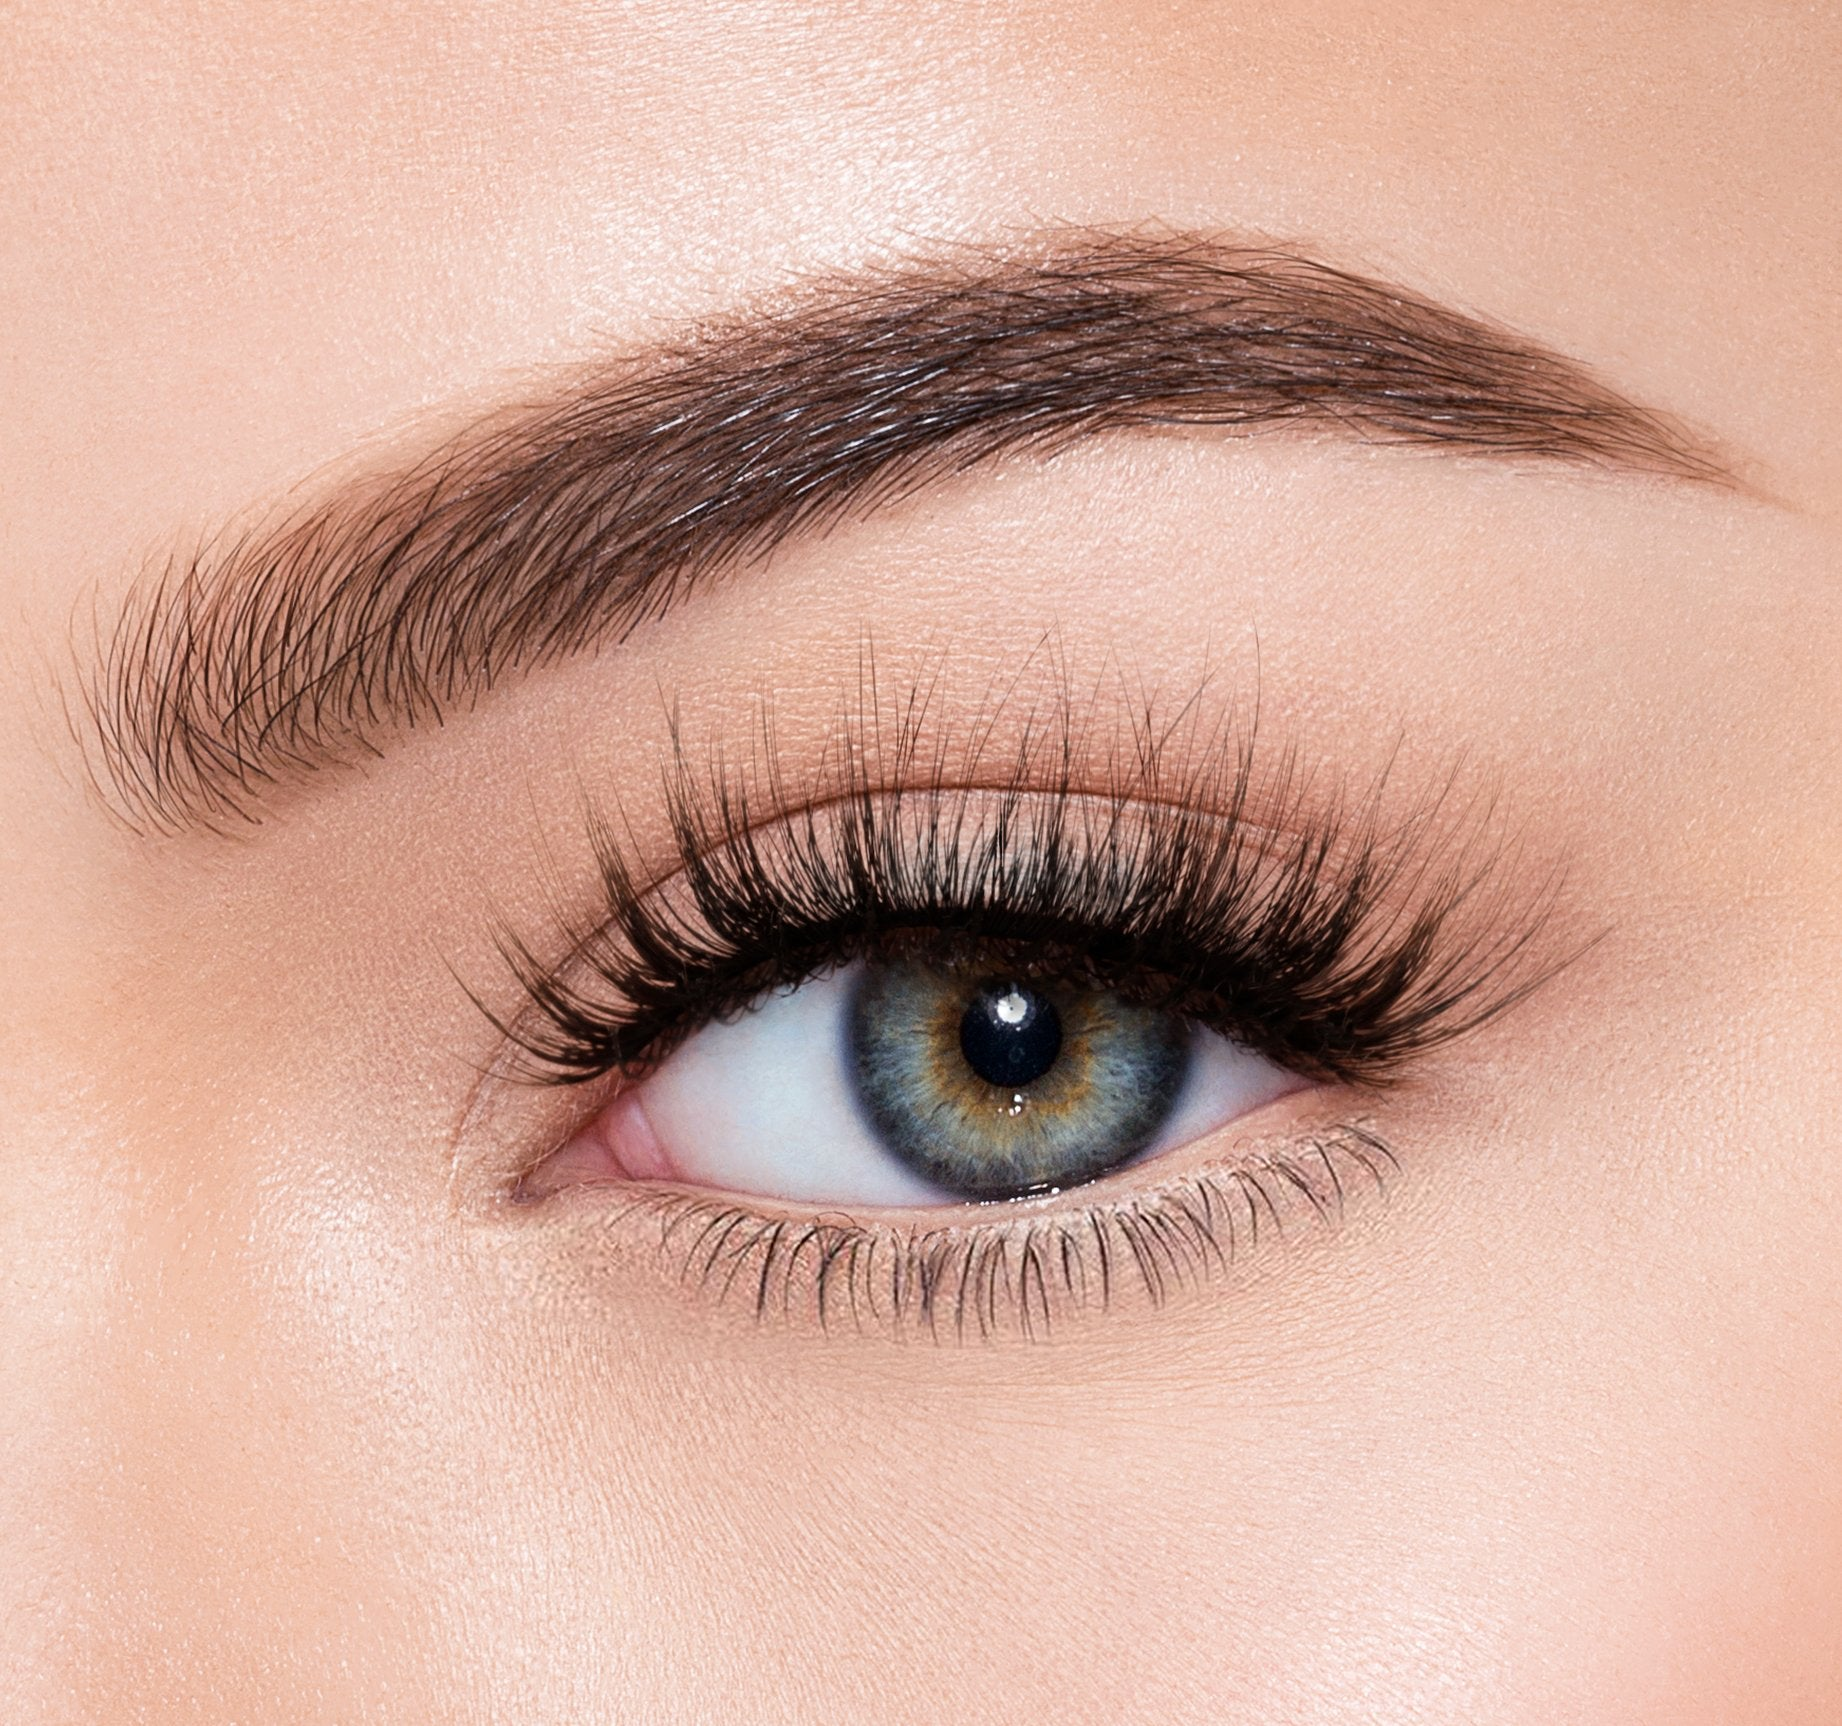 PREMIUM LASHES -  OBSESSION ON MODEL, view larger image